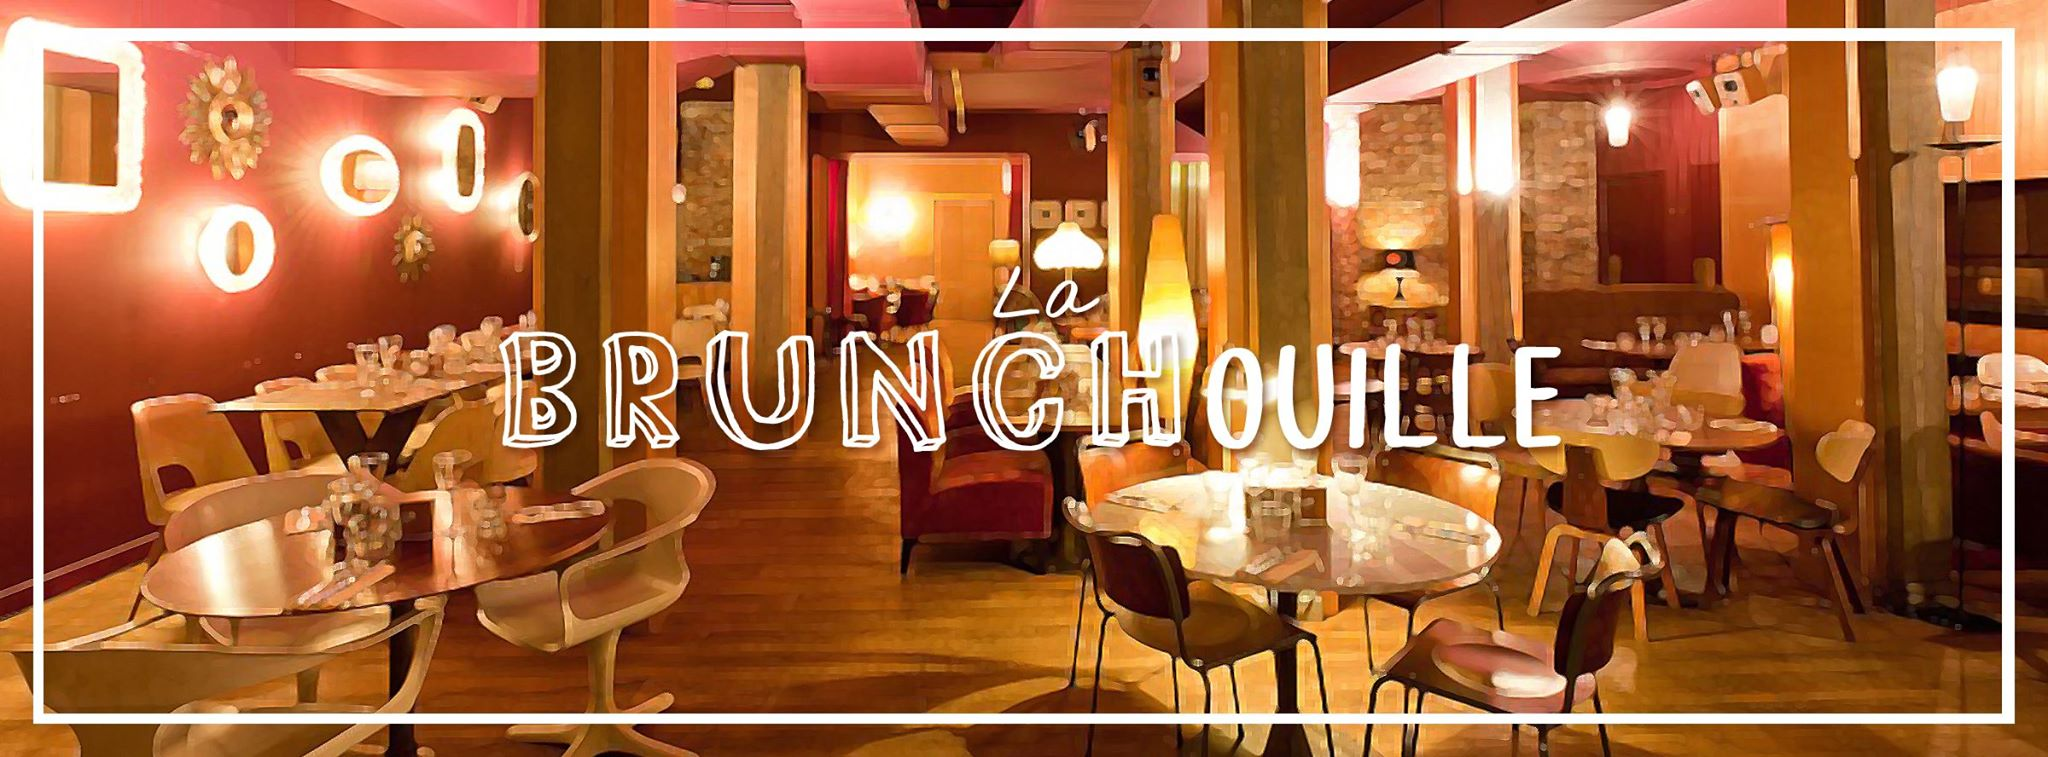 brunch paris, ou bruncher paris, brunch paris dimanche, idee brunch, la brunchouille, brunch bliss paris, brunch paris 1, brunch paris 75001, avis bliss paris, avis la brunchouille, avis brunch bliss paris, ou bruncher a paris brunch à volonté paris, brunch a volonté,